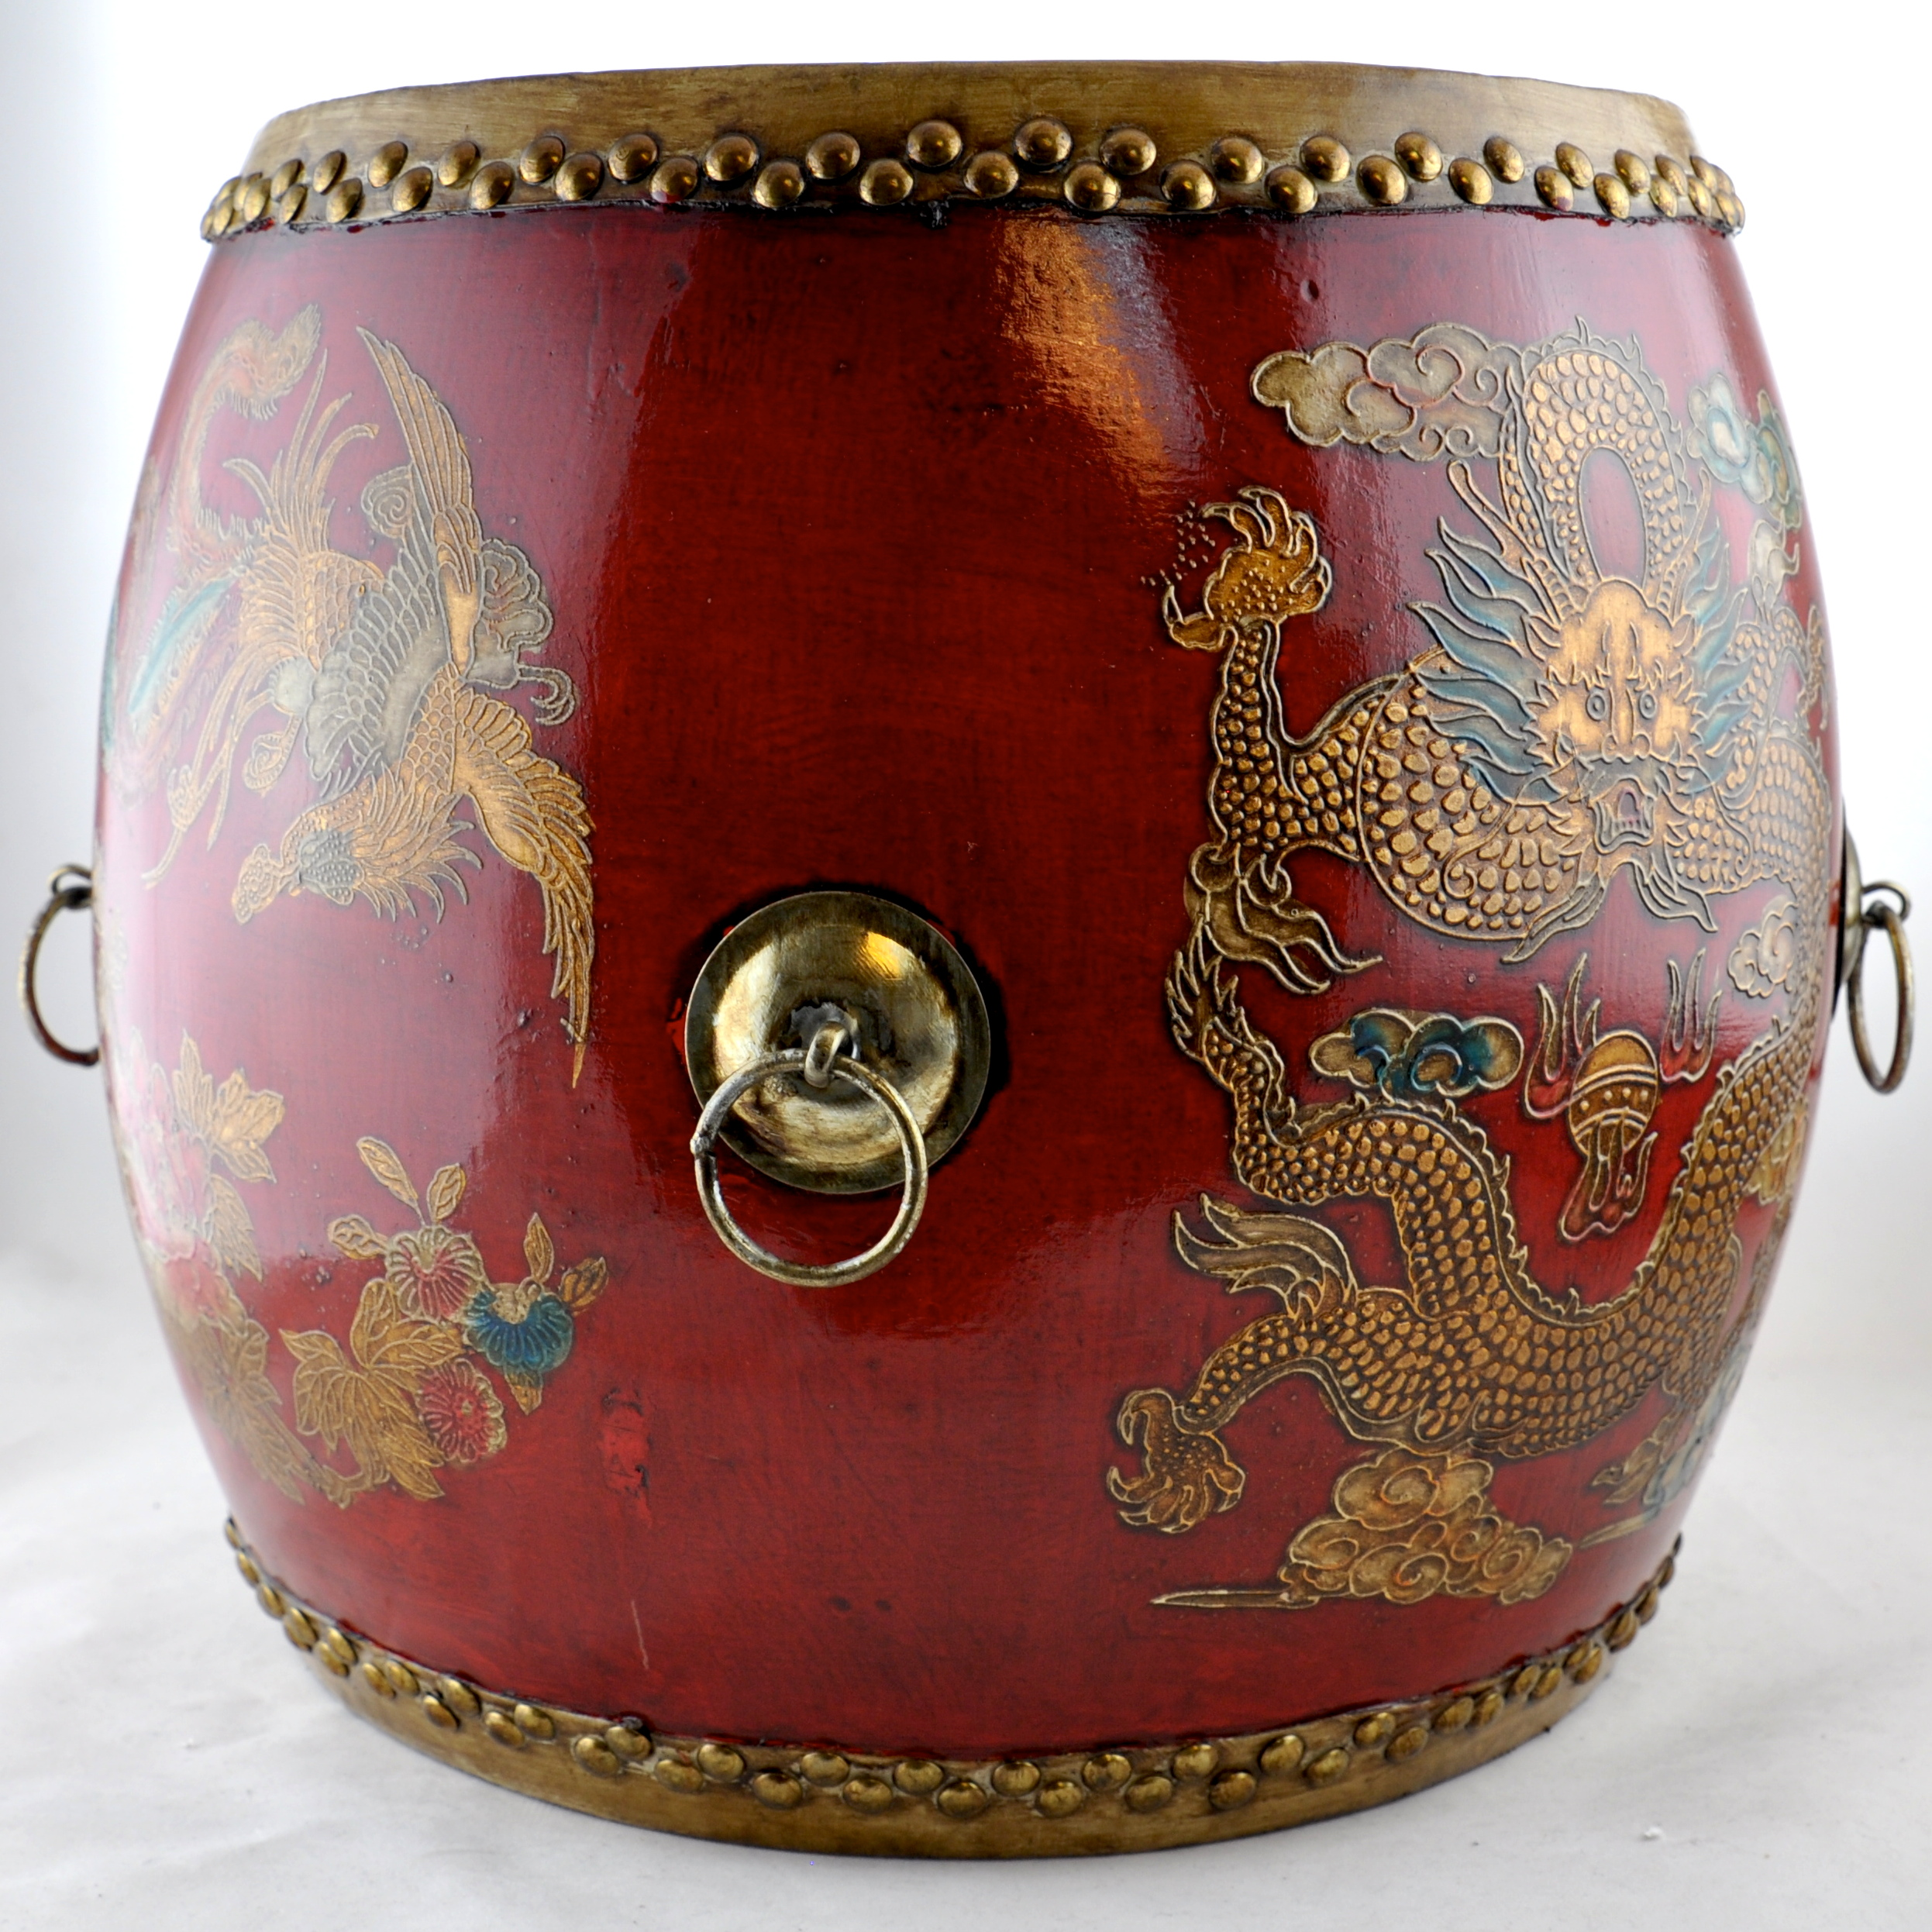 Chinese Drum Coffee Table: Drum - Red Dragon & Phoenix